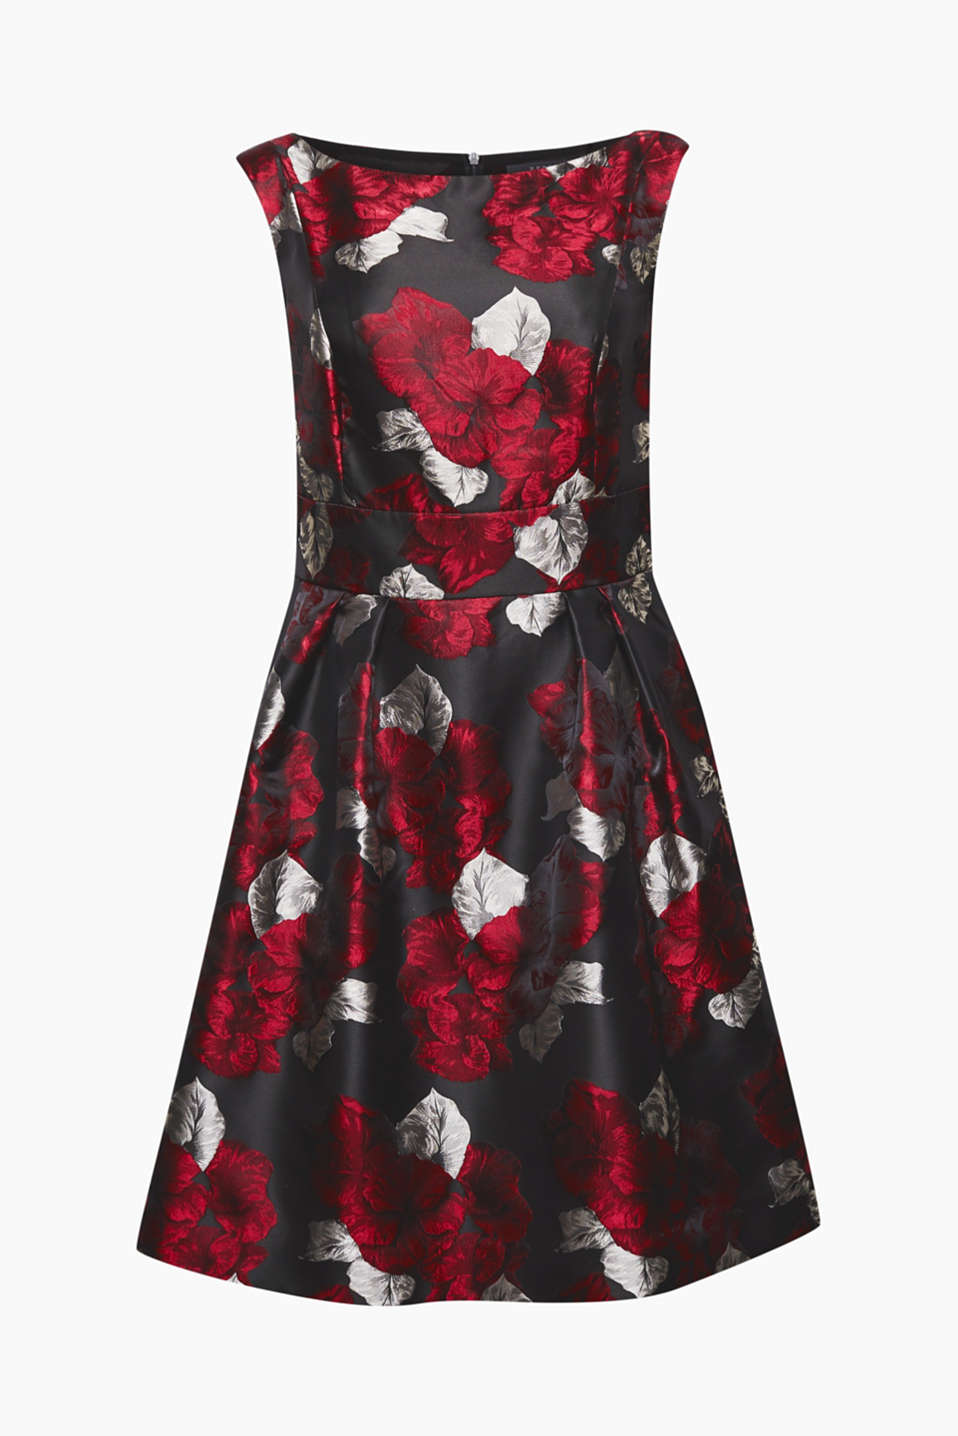 The floral pattern and shimmering finish make this dress perfect for festive occasions.